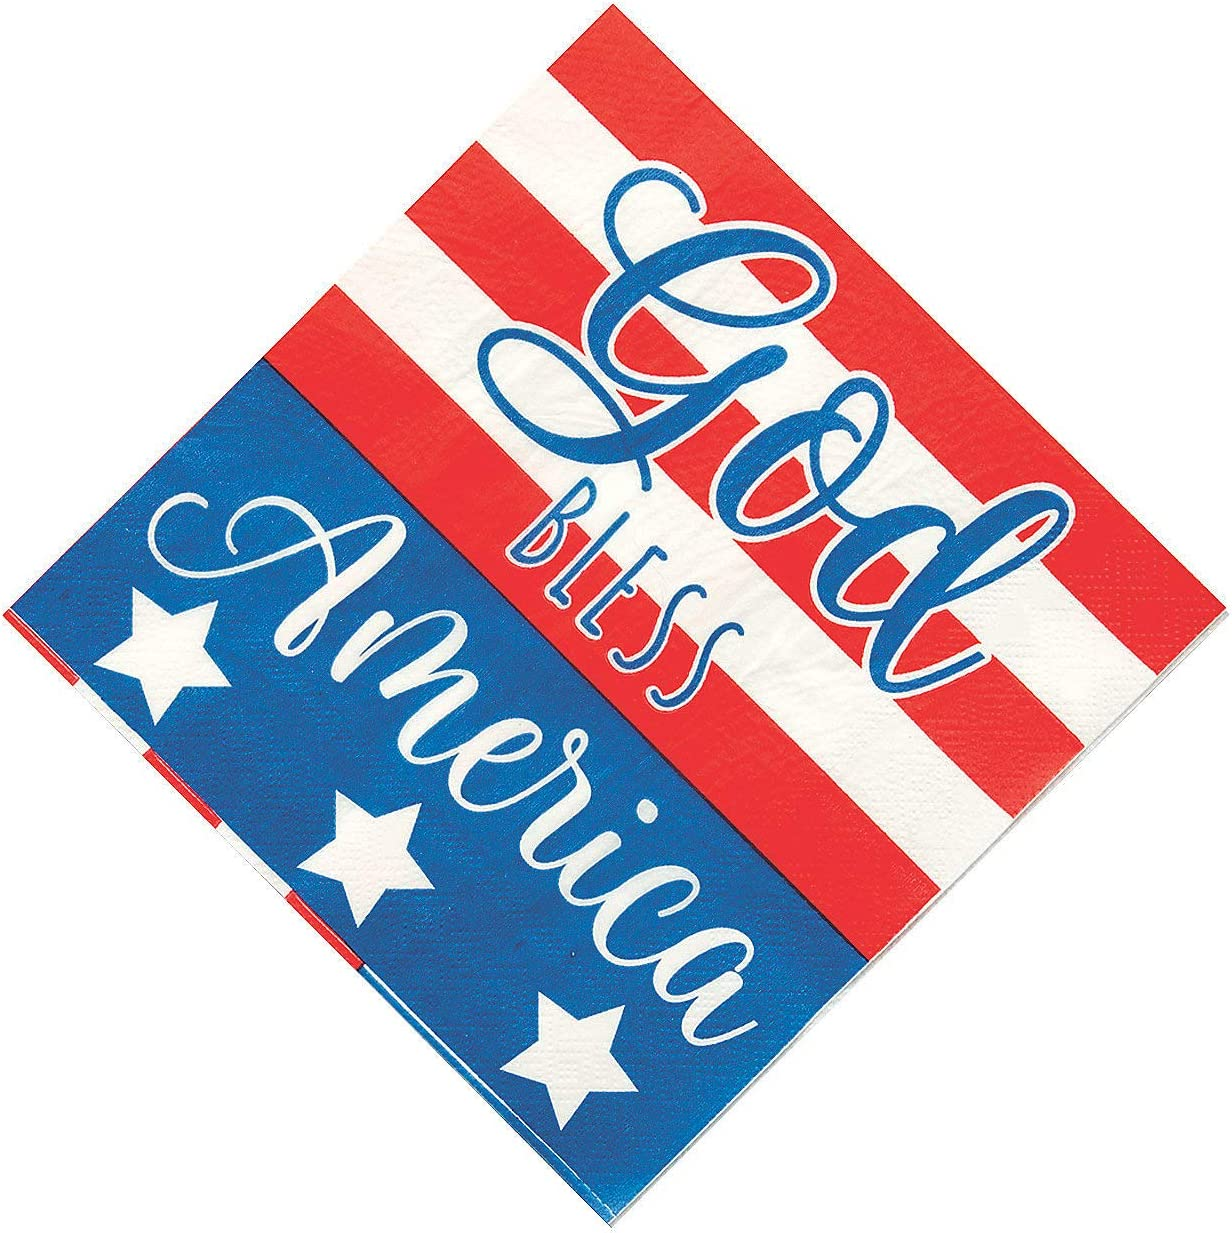 God Bless America Lunch Napkins (16Pc) - Party Supplies - 16 Pieces